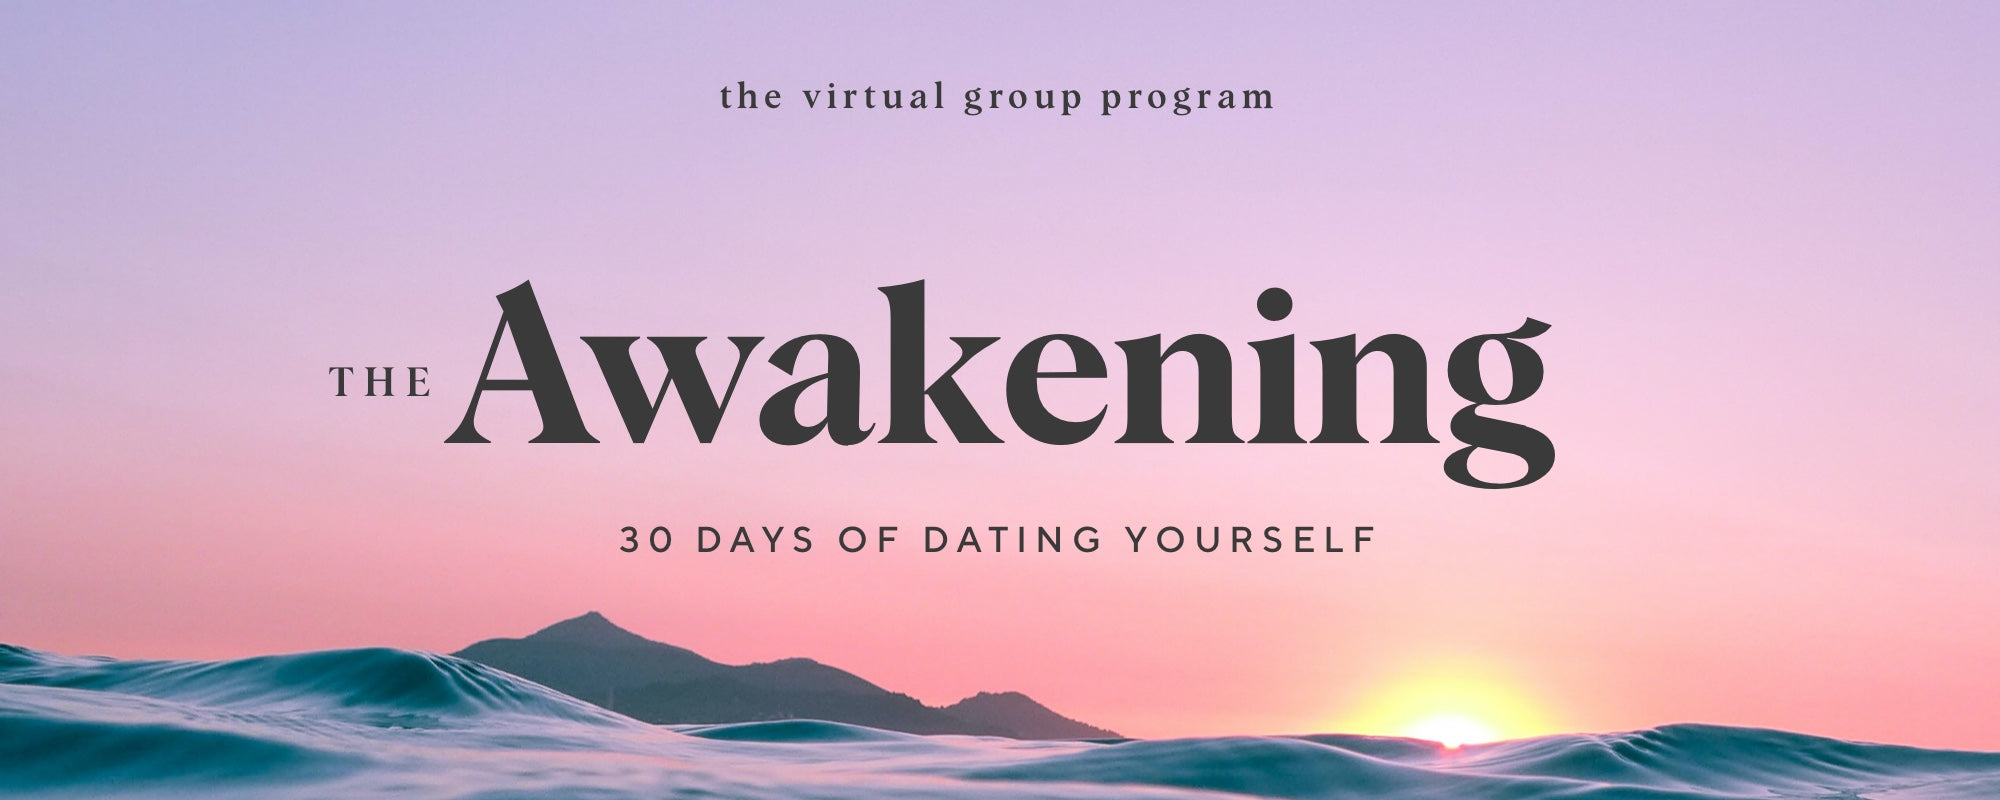 The Virtual Group Program: The Awakening — 30 Days of Dating Yourself